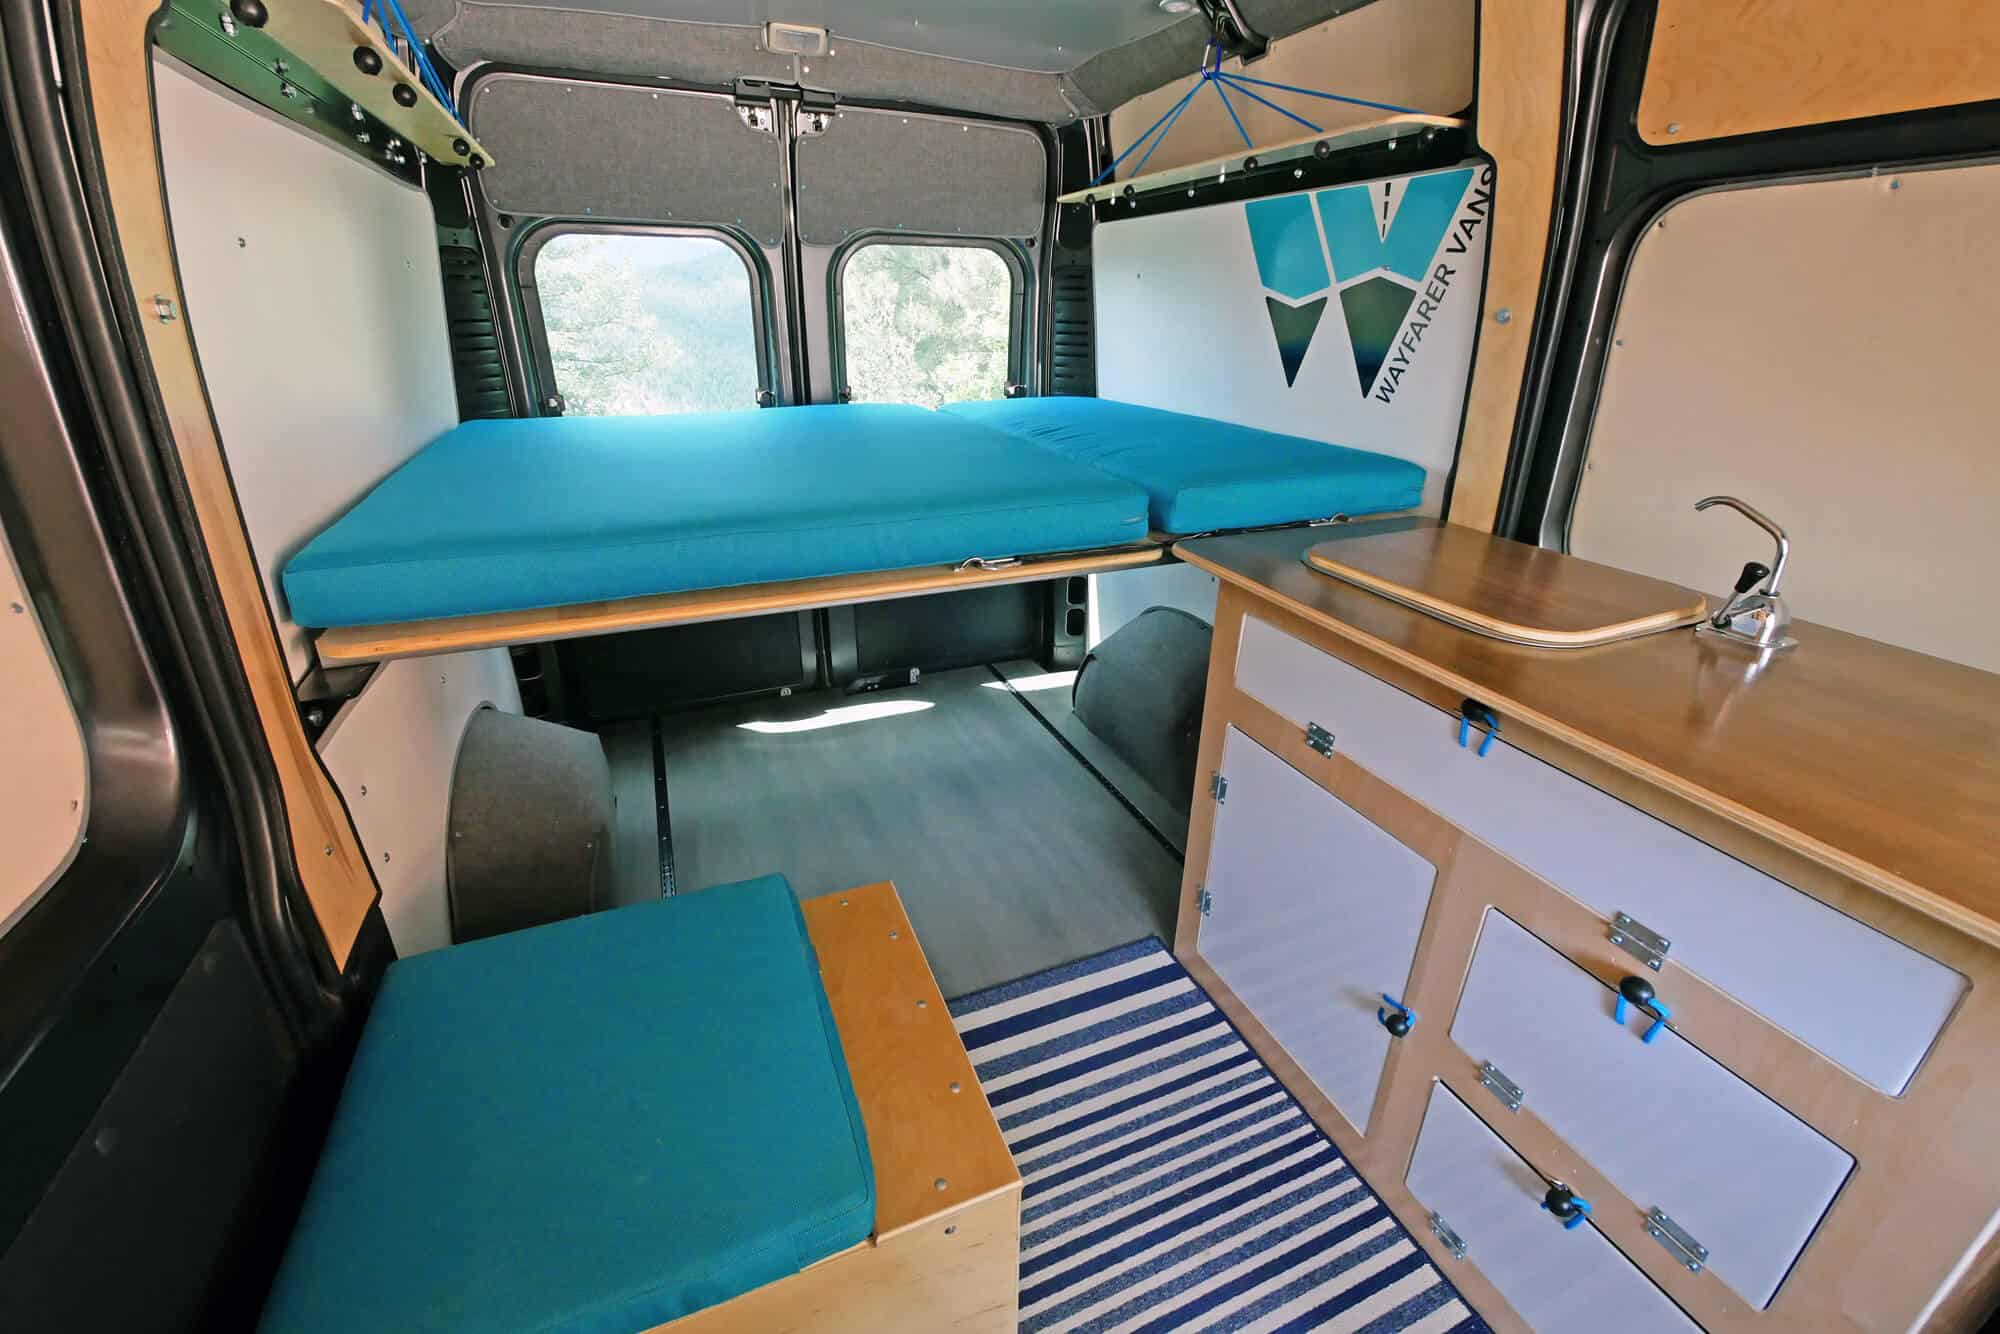 hight resolution of ram promaster camper van conversion kit simple teal